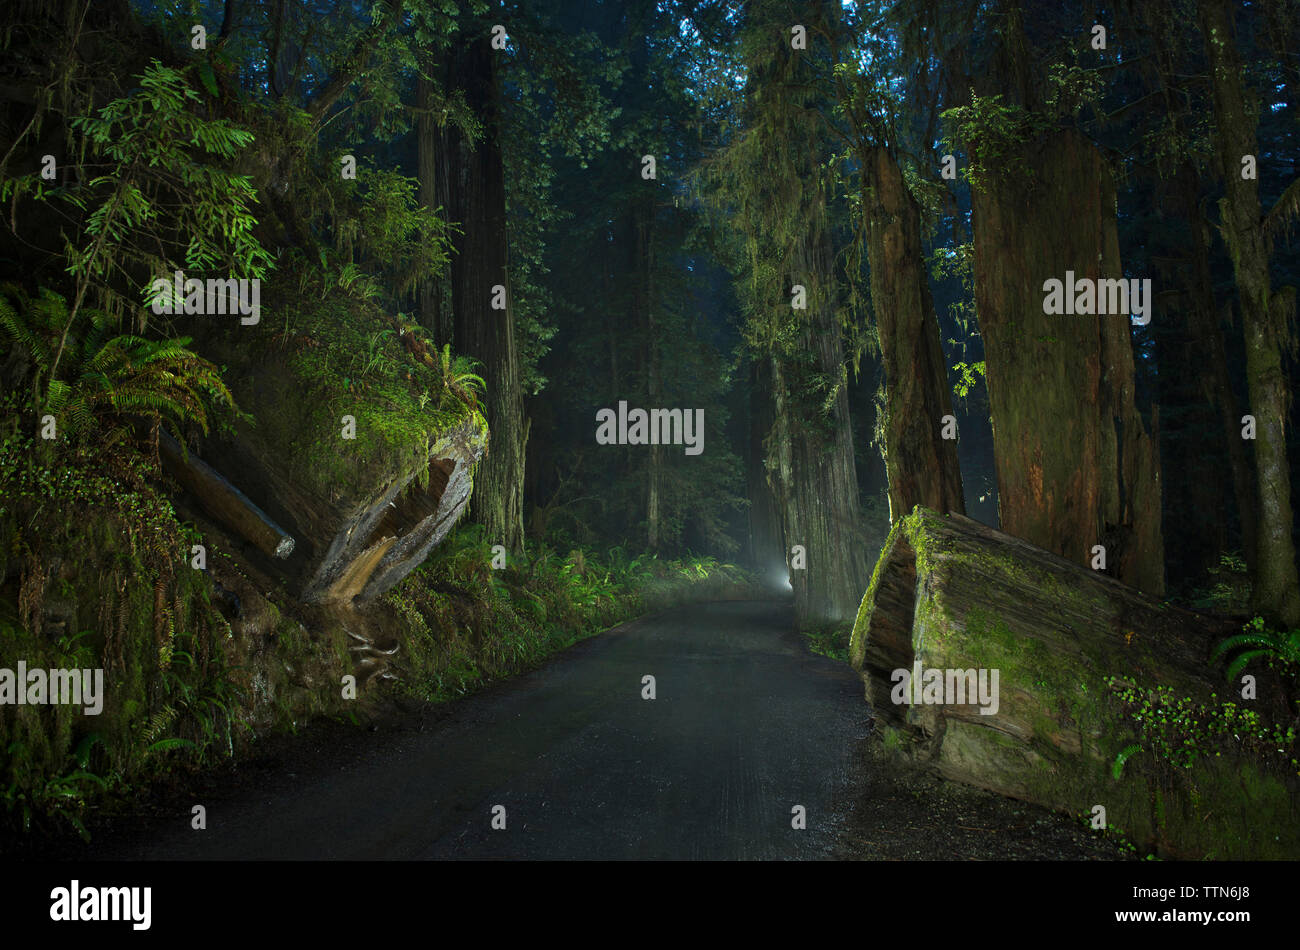 Road amidst forest at Jedediah Smith Redwoods State Park during dusk - Stock Image